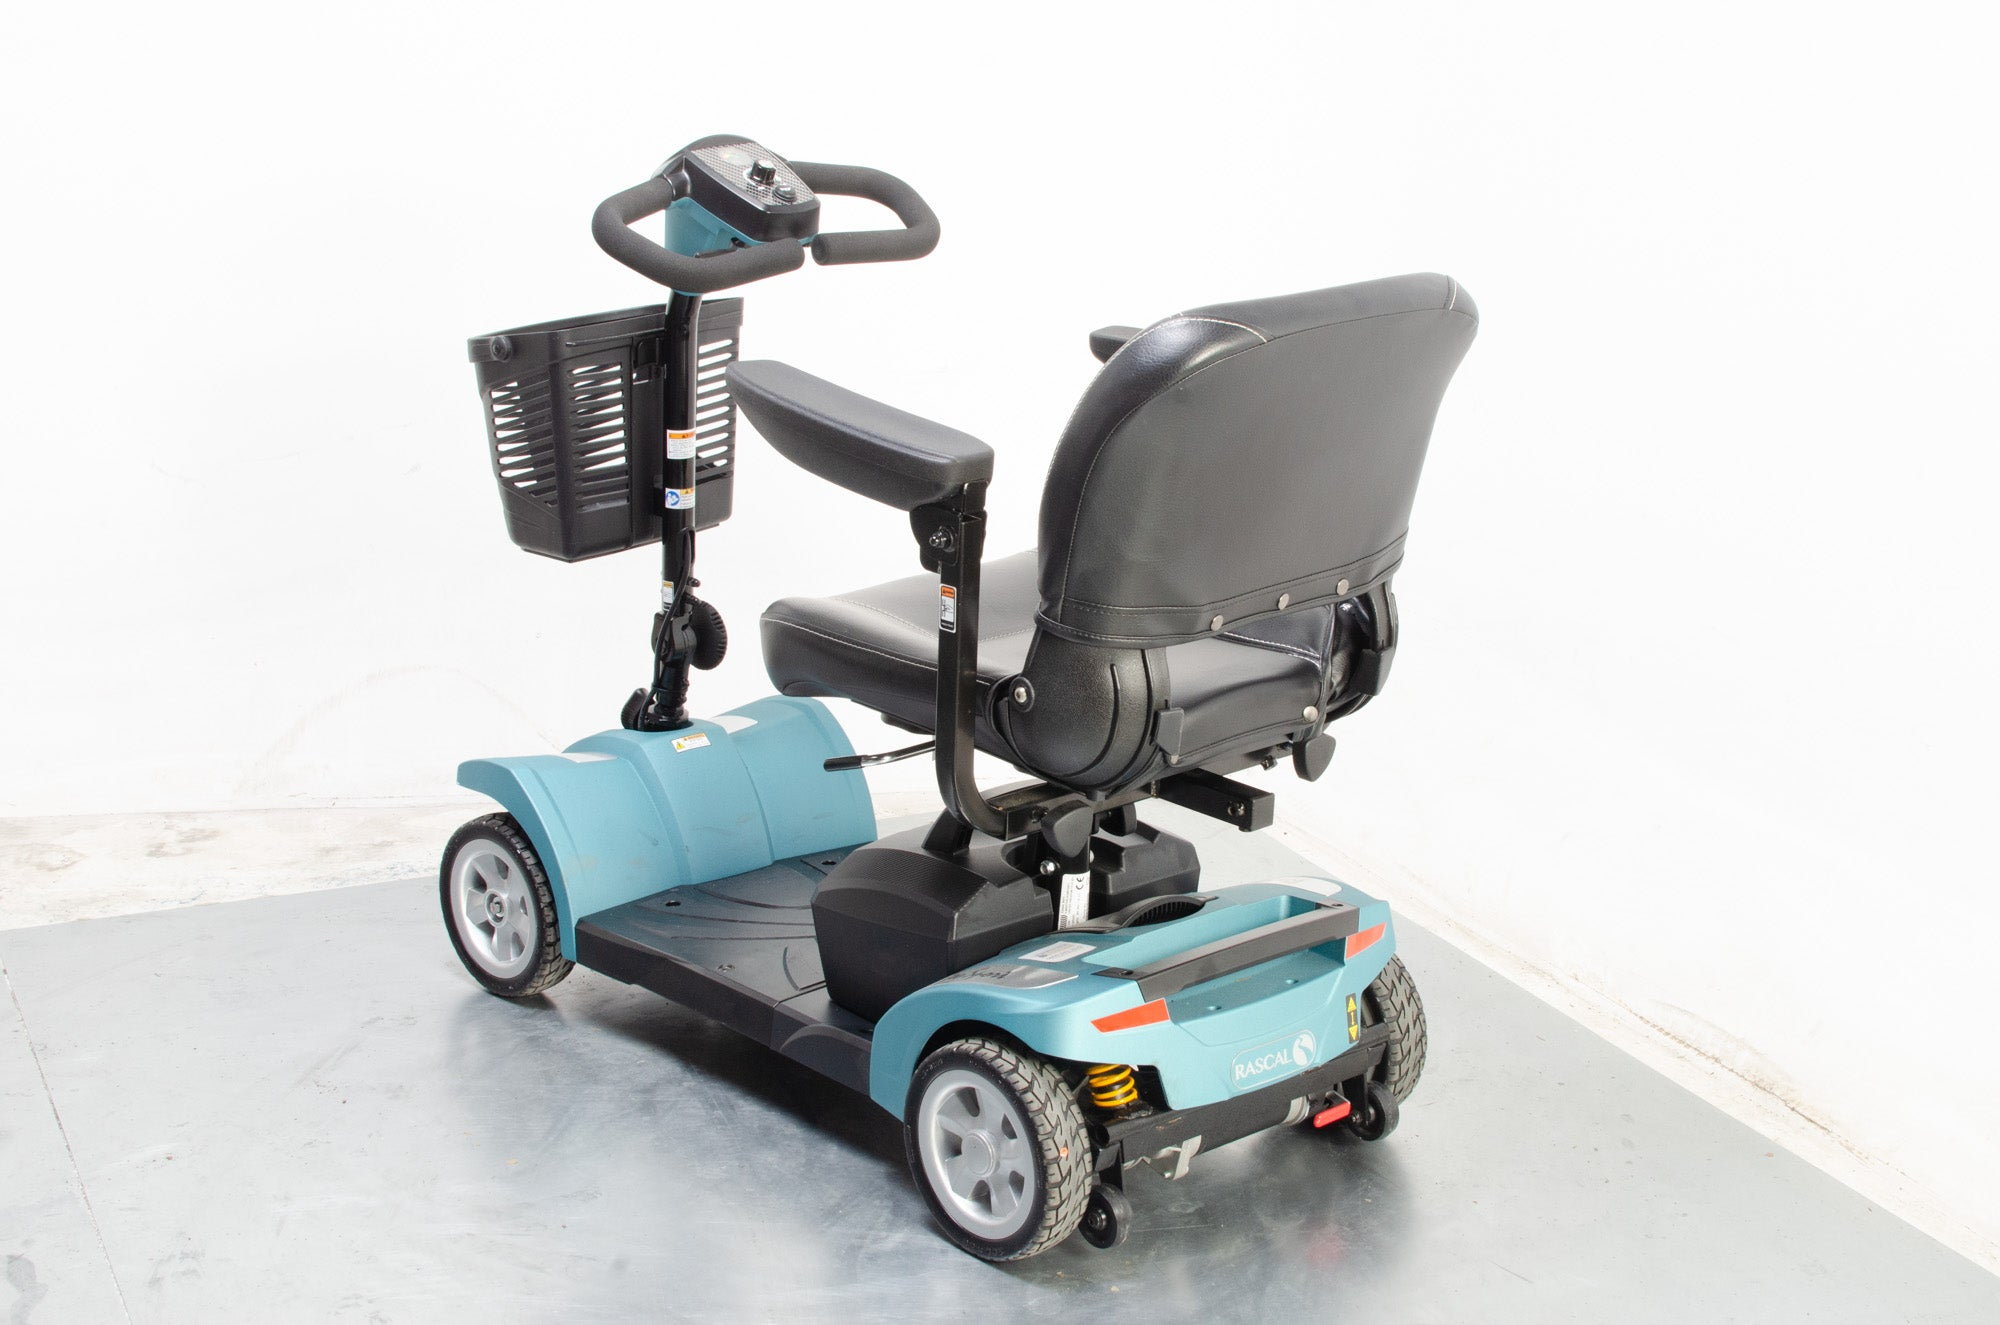 2019 Rascal Veo Sport Electric Mobility Scooter 4mph Small Transportable Teal